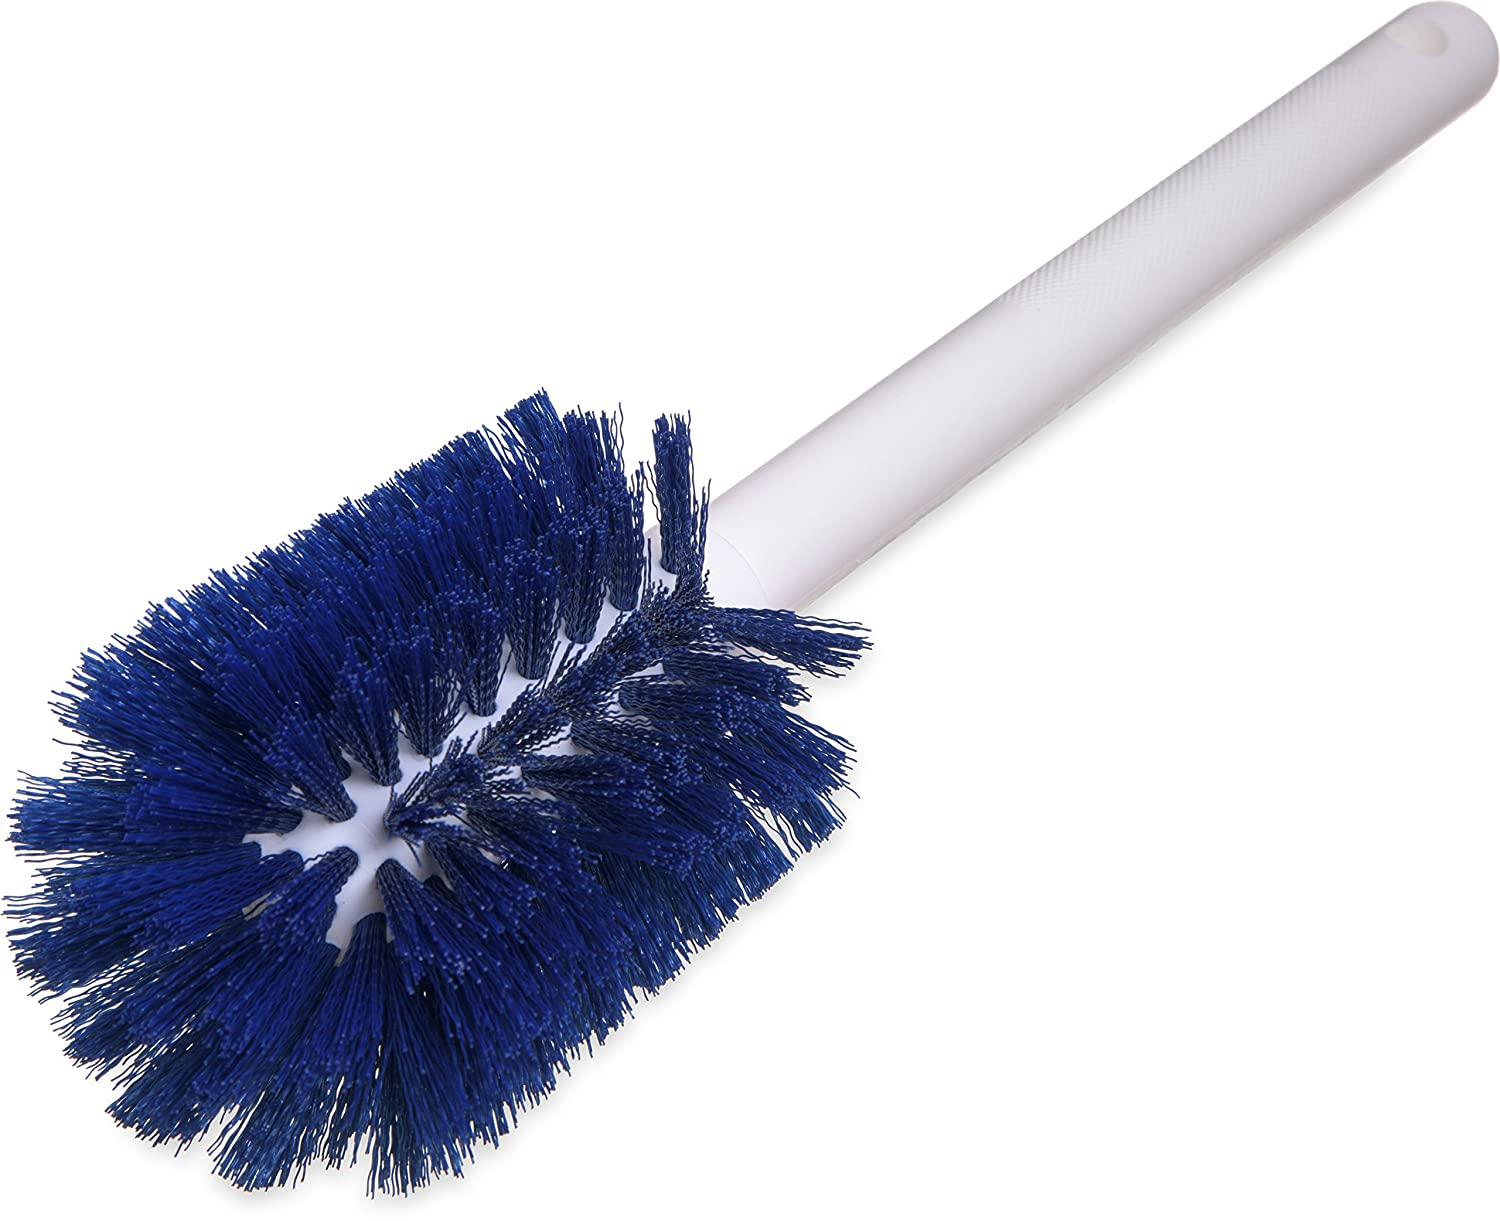 12 Length Carlisle FoodService Products Red 12 Length Pack of 6 Carlisle 40000C05 Commercial Bottle Brush Polyester Bristles